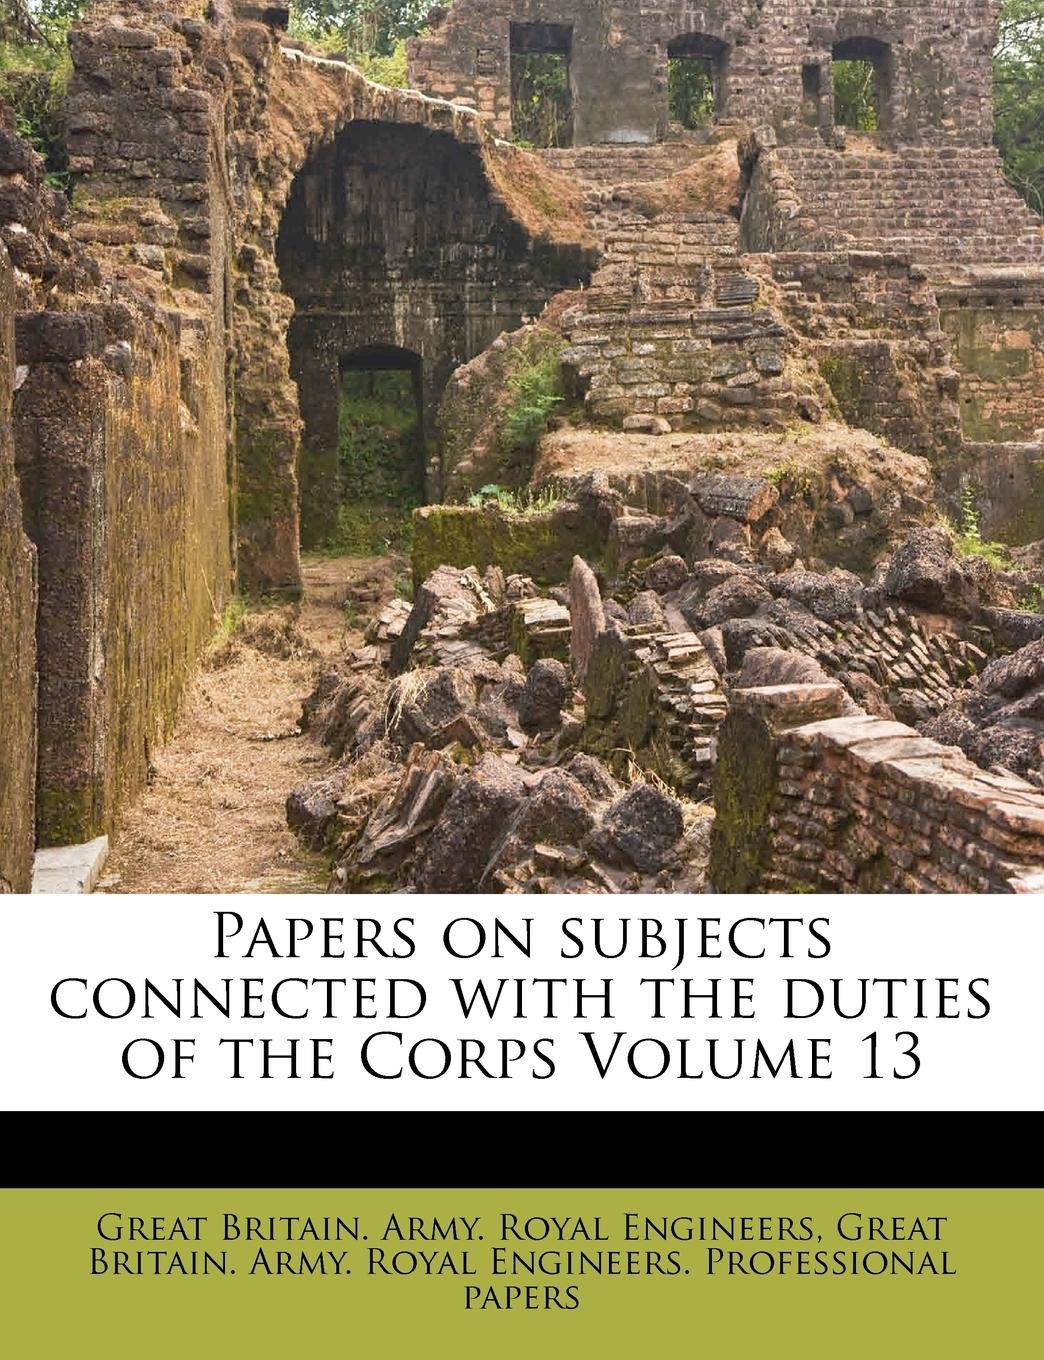 Papers on subjects connected with the duties of the Corps Volume 13 pdf